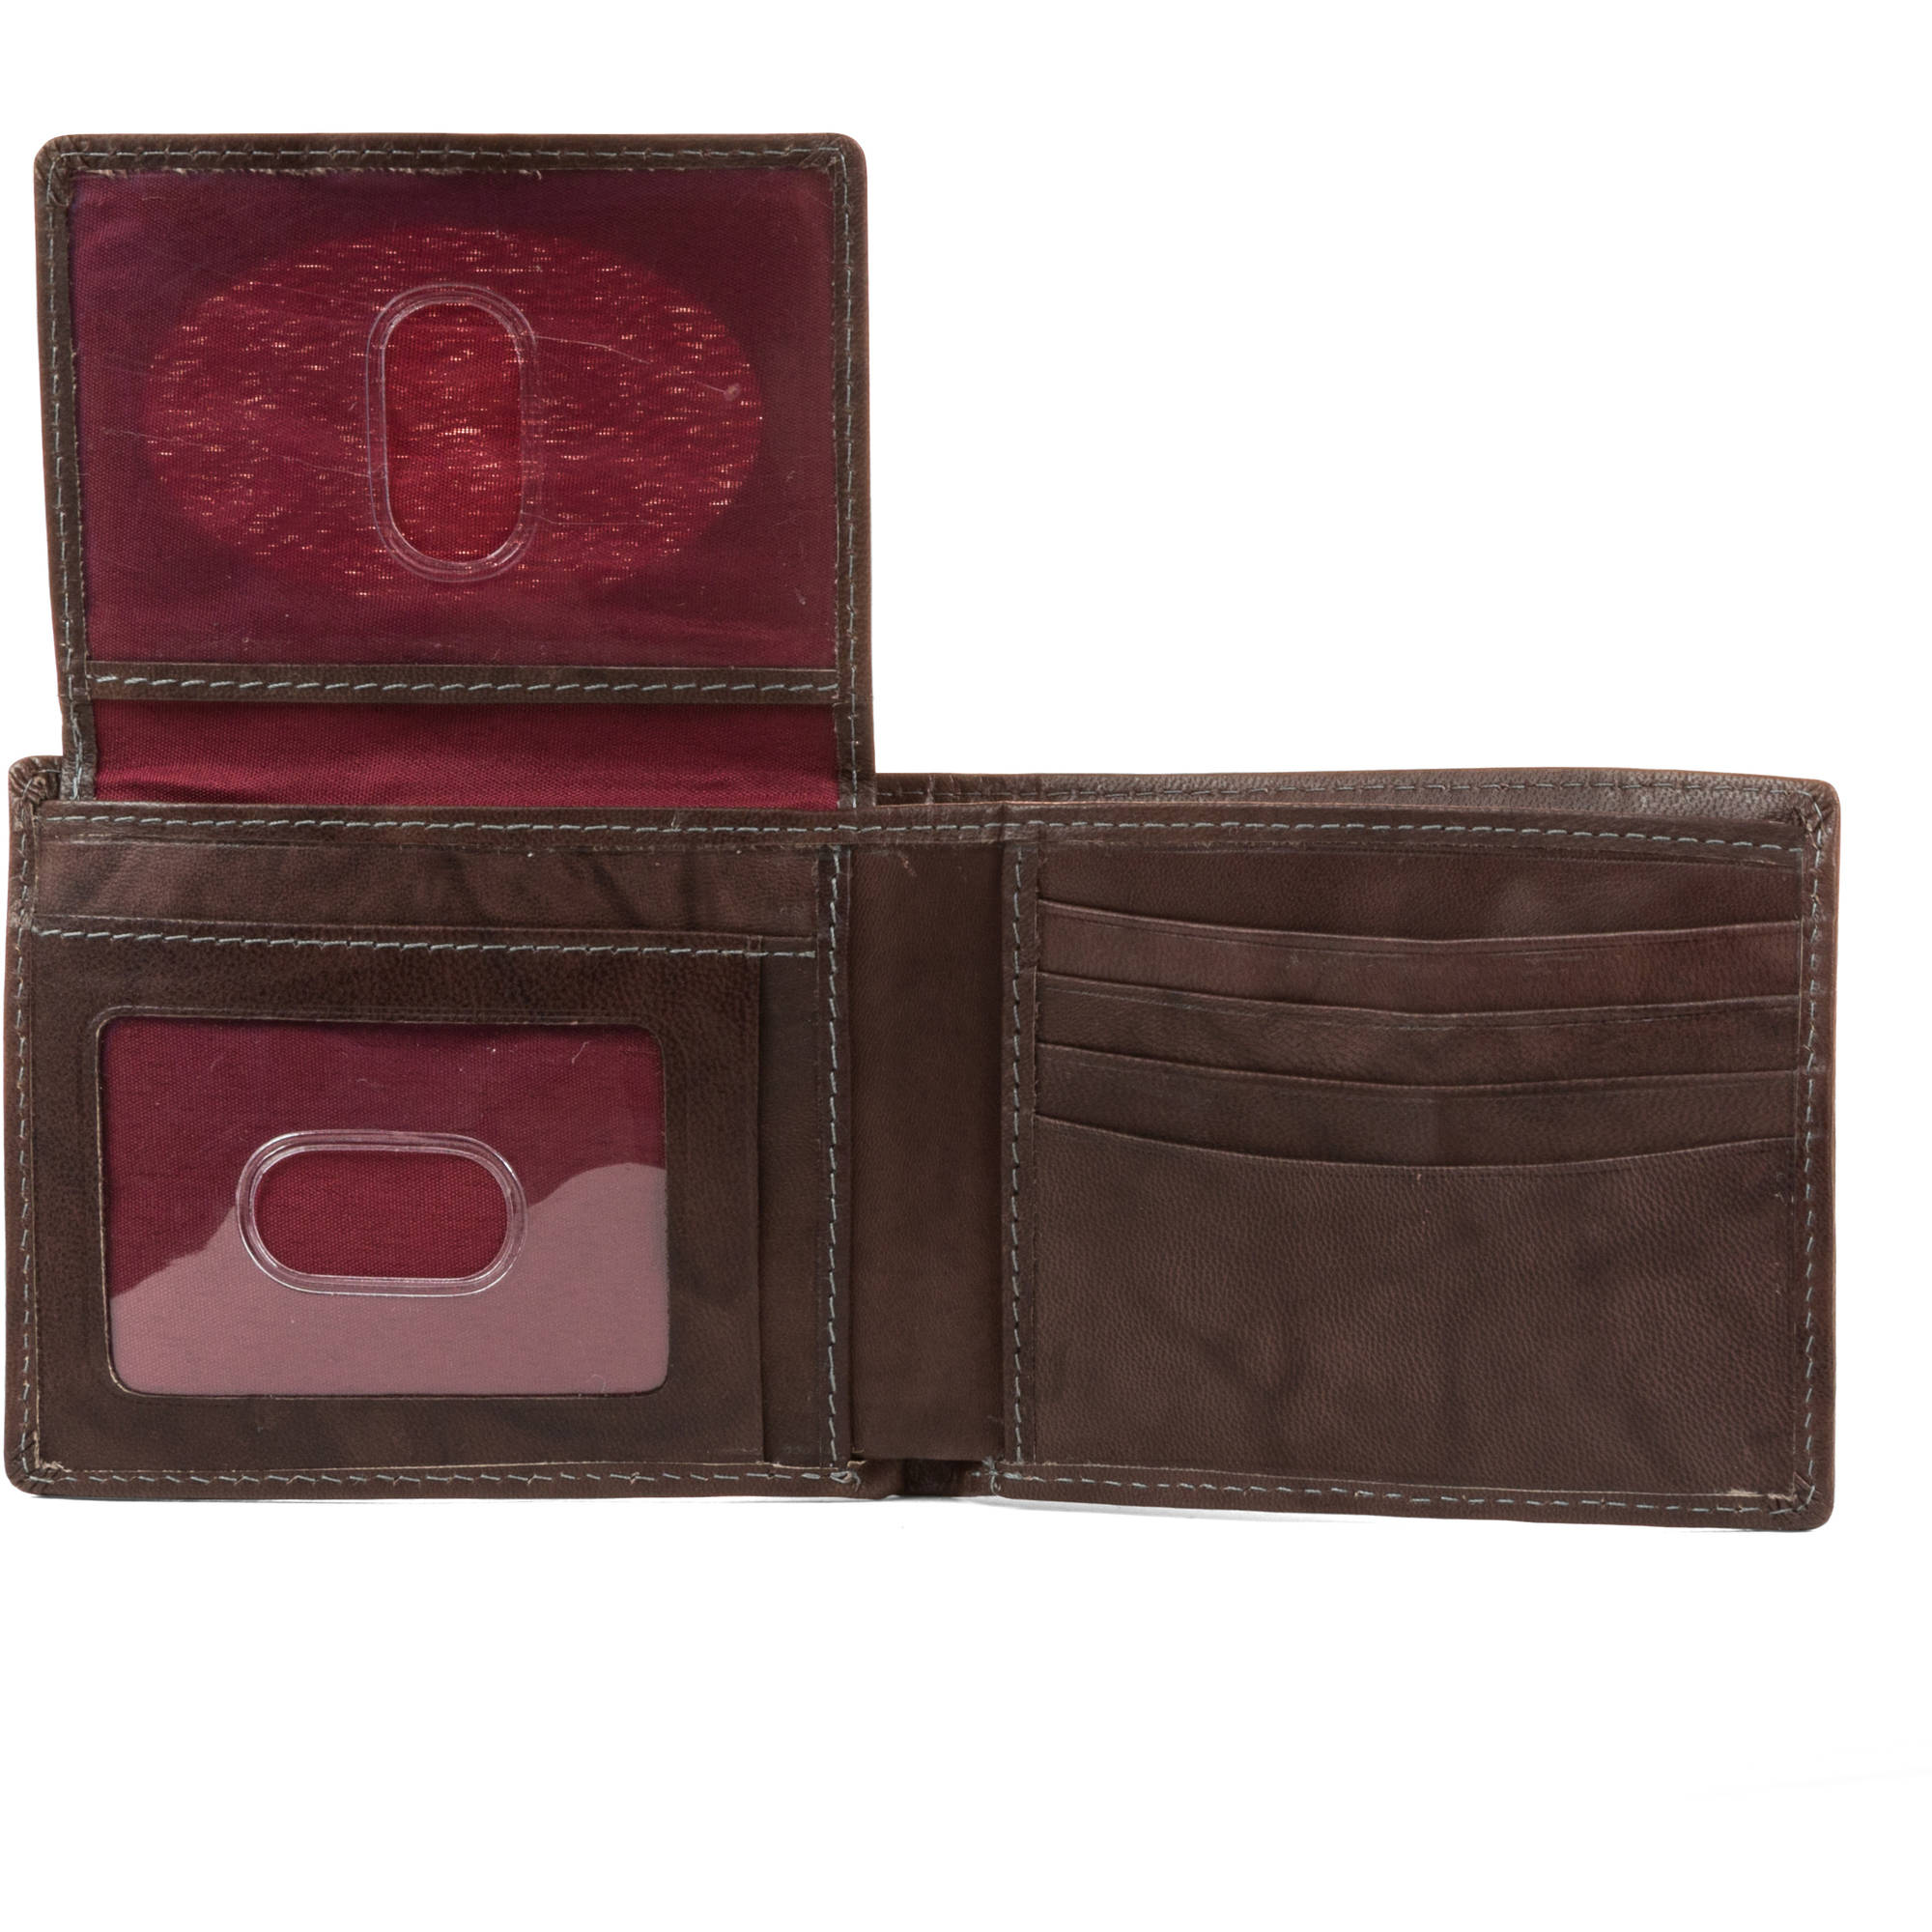 George Antique Passcase Wall